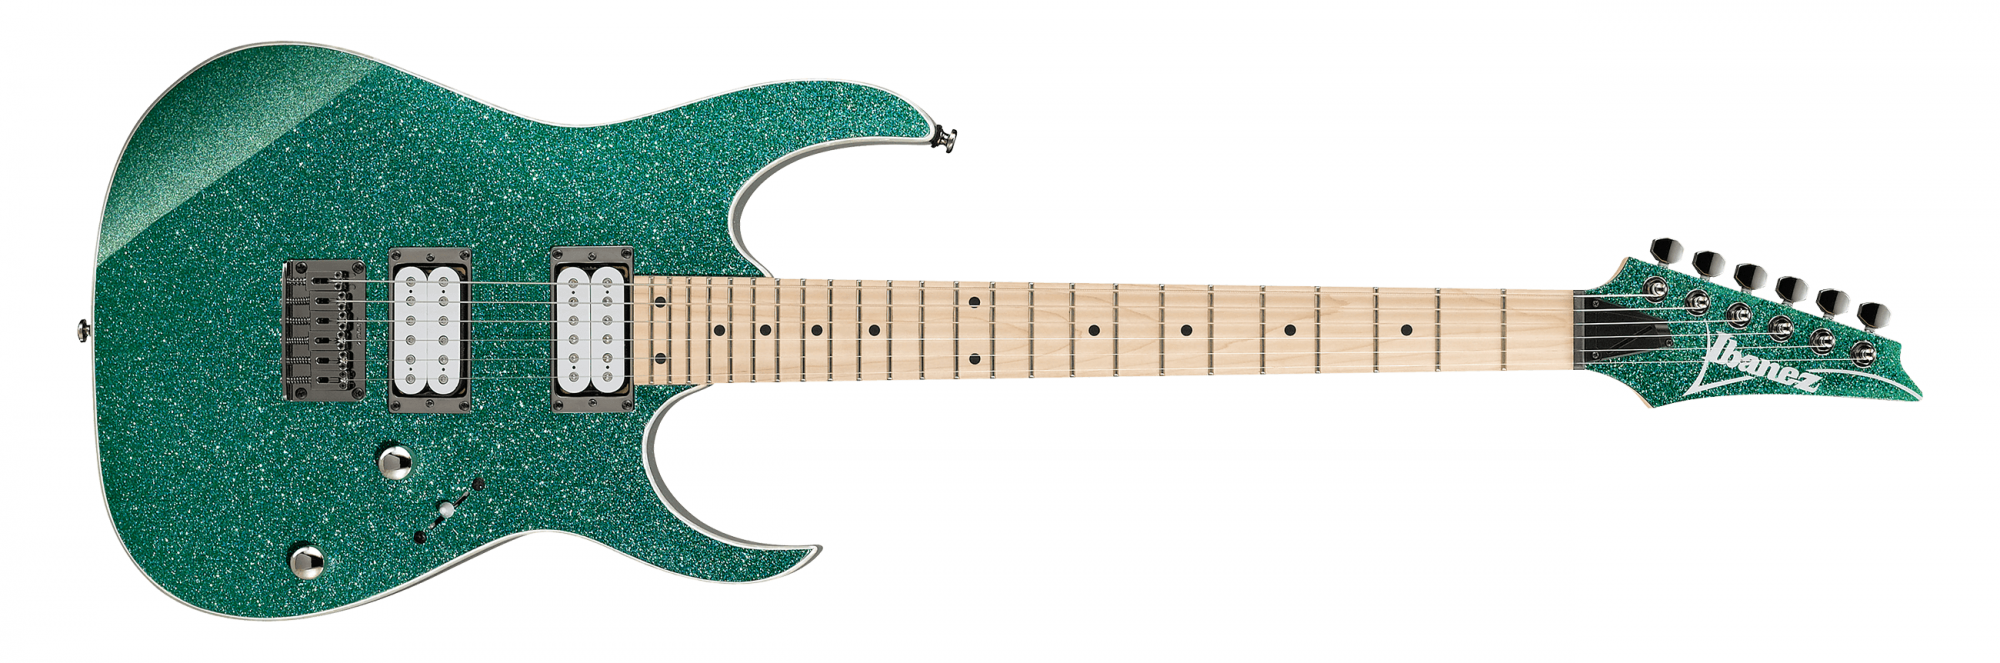 Ibanez RG421MSP Electric Guitar, Turquoise Sparkle